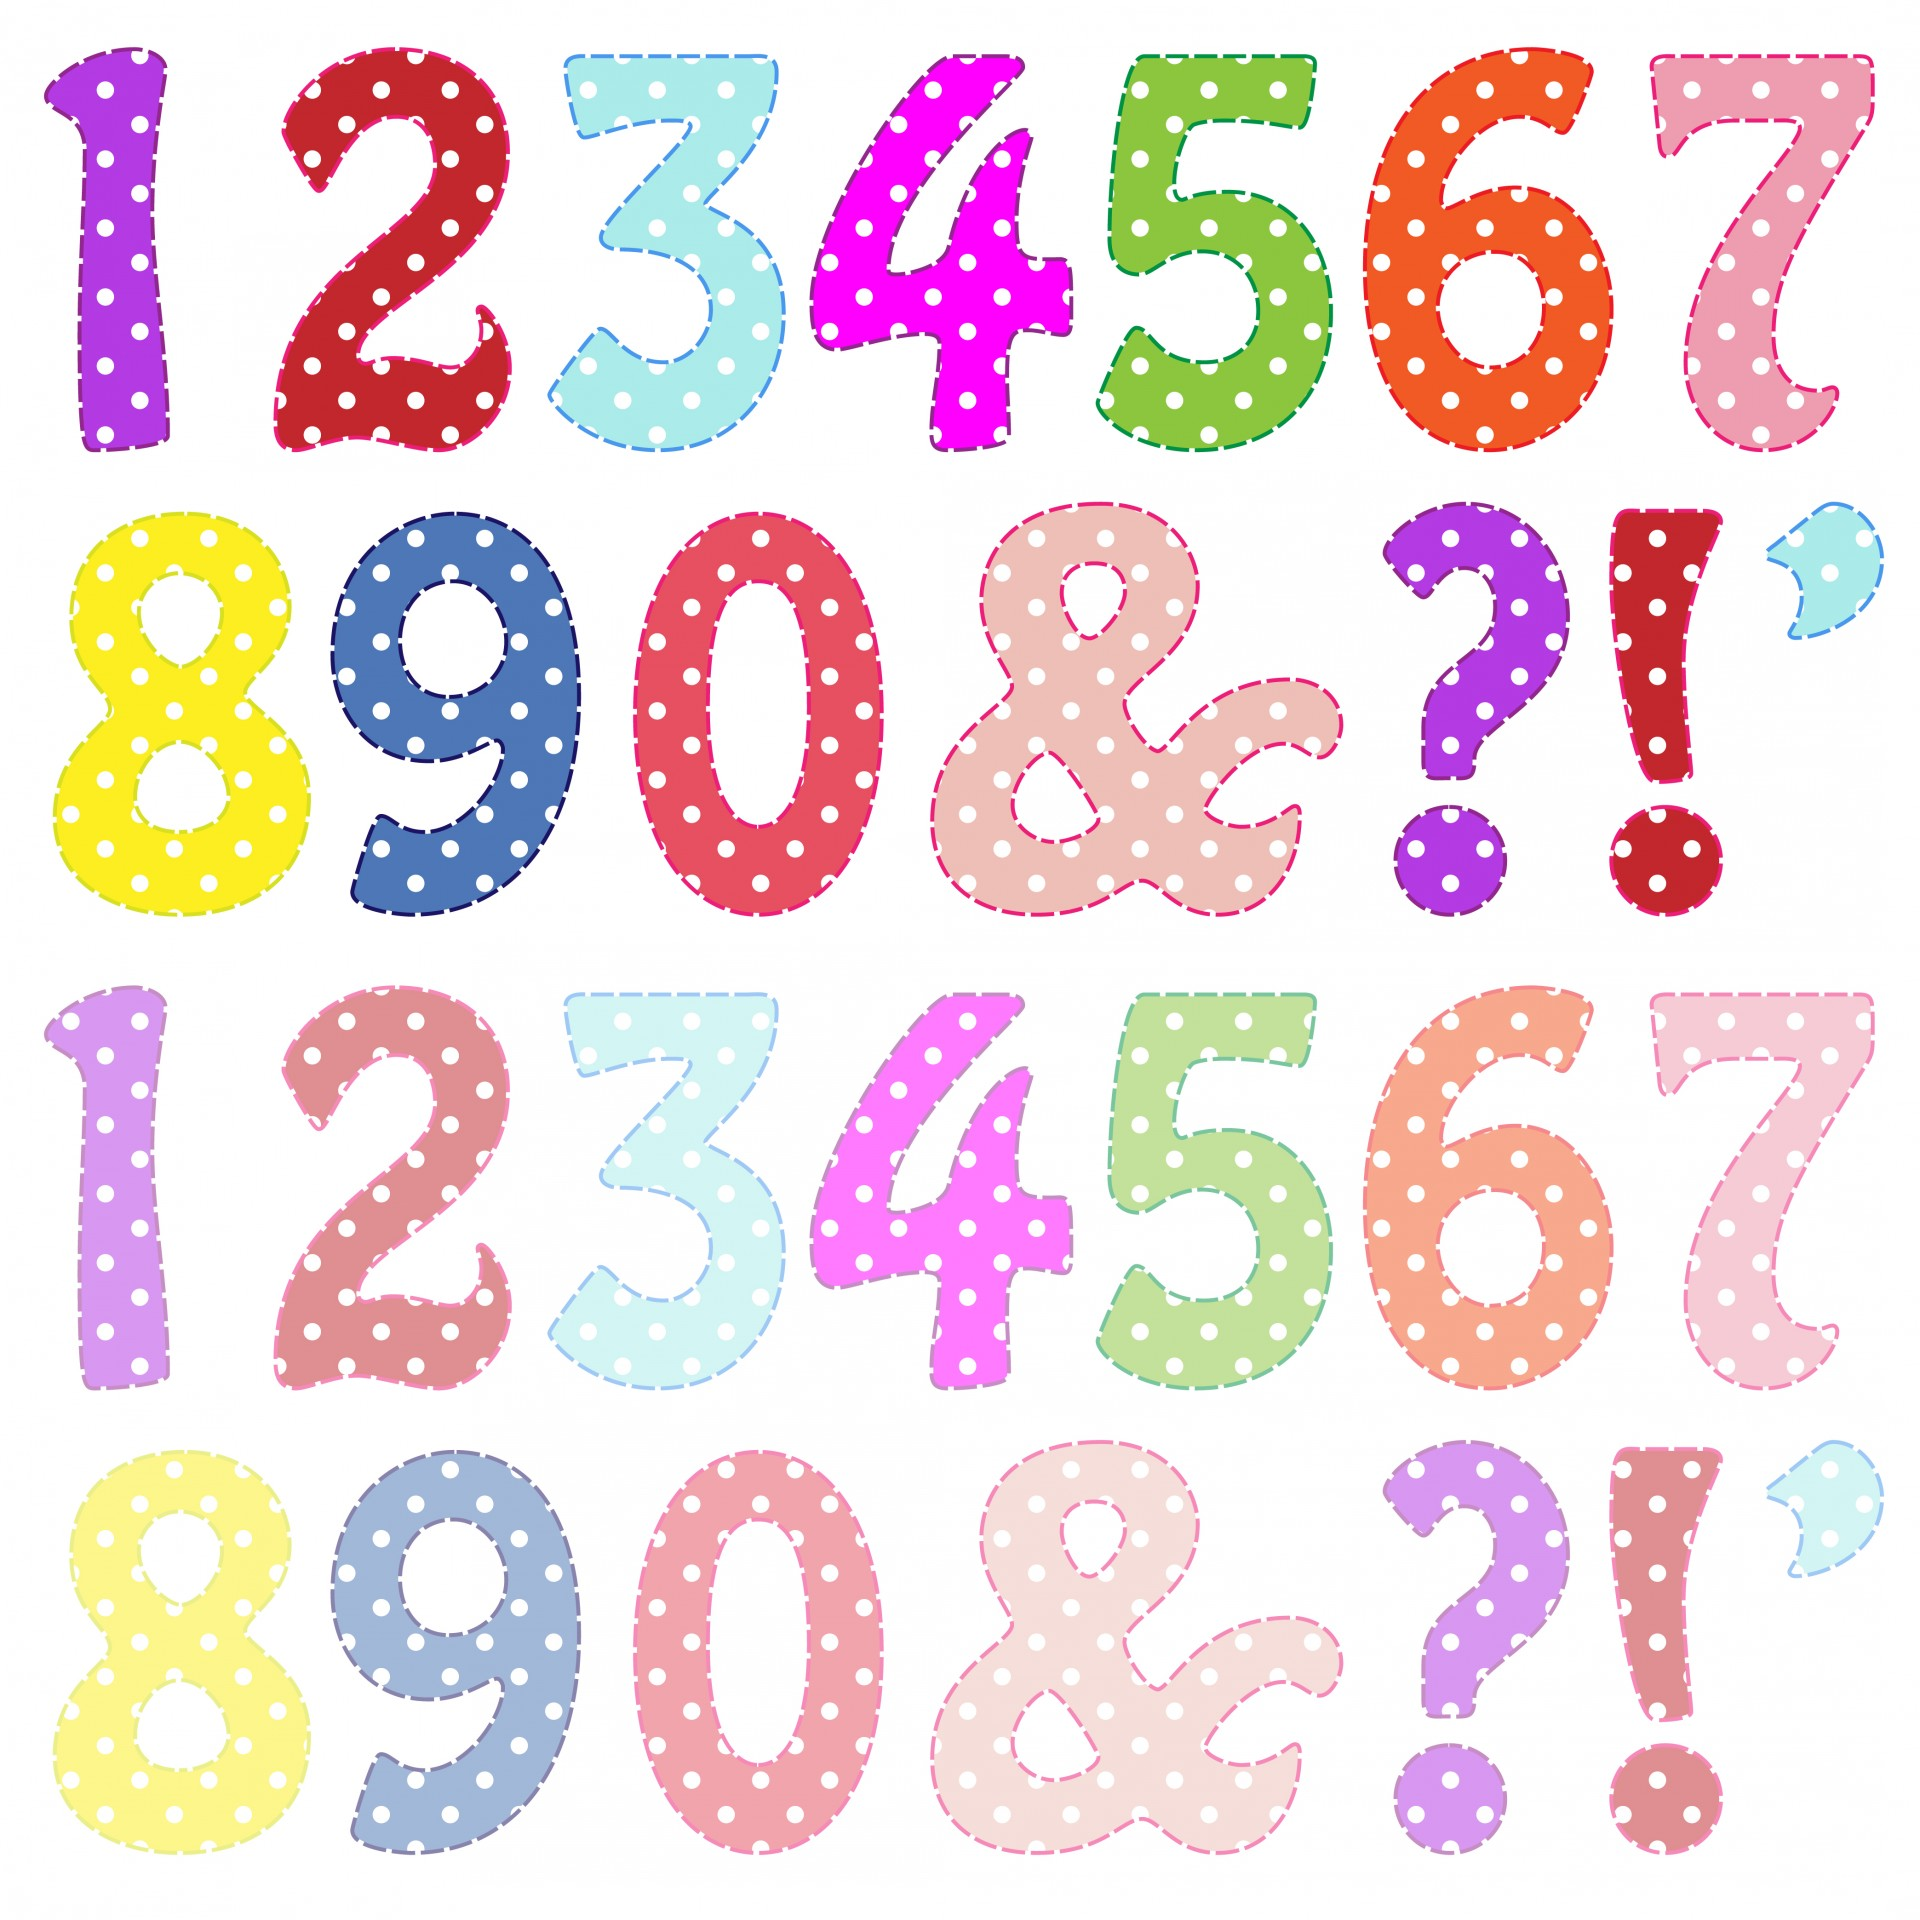 Colorful Numbers Clipart Free Stock Photo Hd   Public Domain Pictures